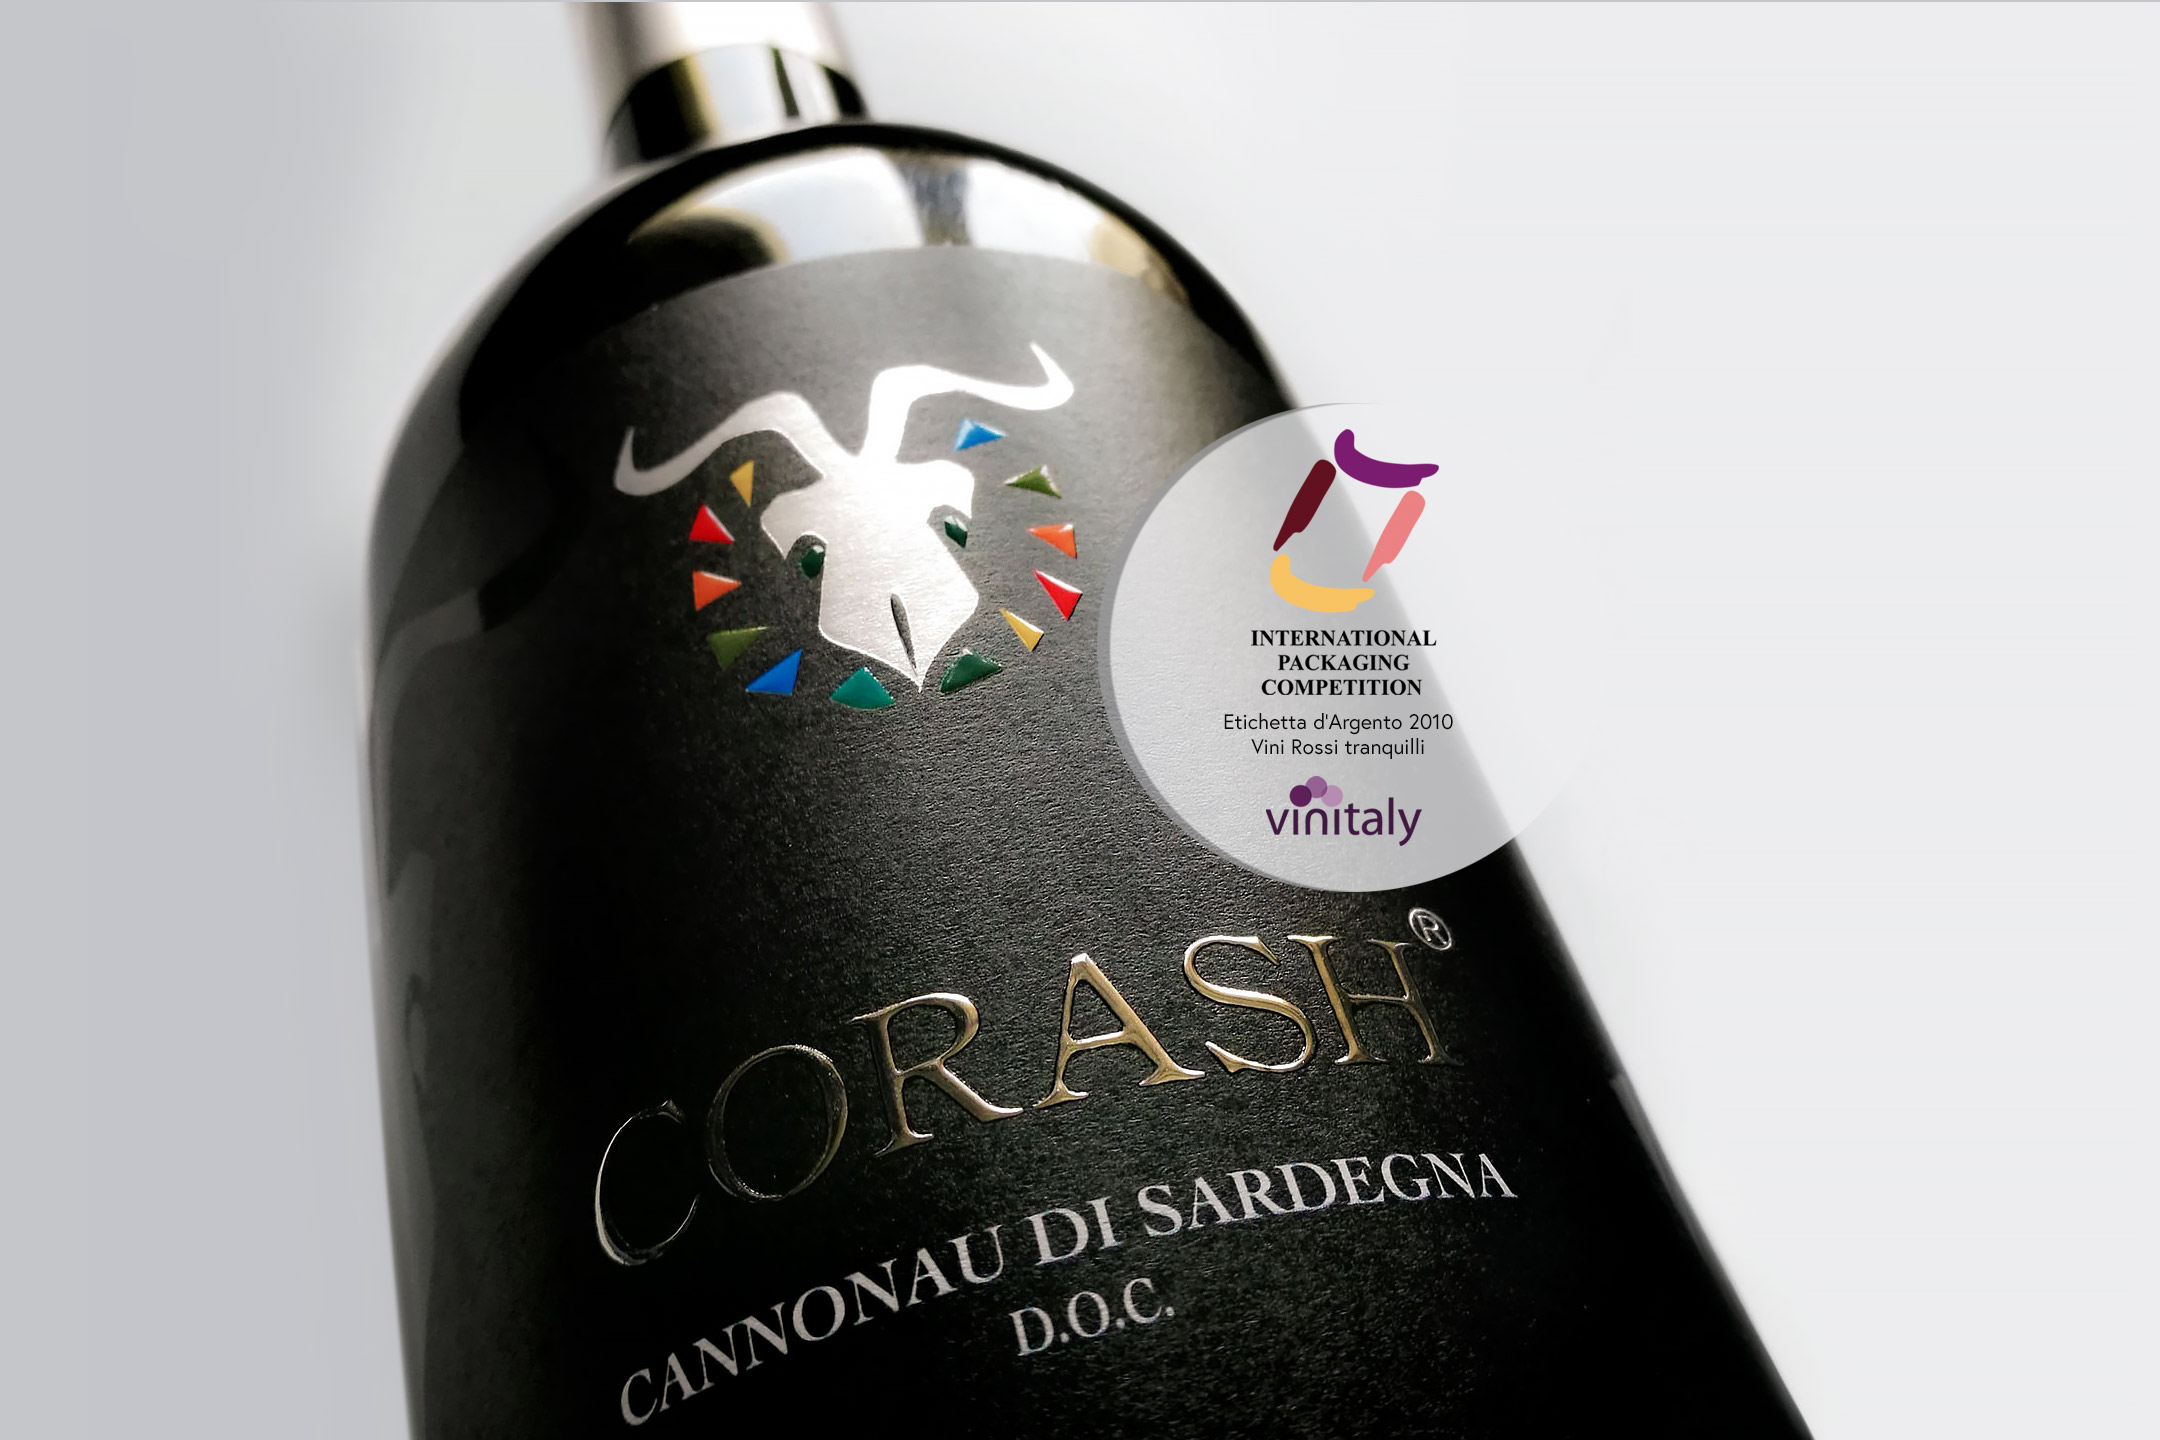 01_KLS_ART&DESIGN_-STUDIO_ADV_ORISTANO_PACKAGING_LABEL_CORASH_CANTINA_VERNACCIA